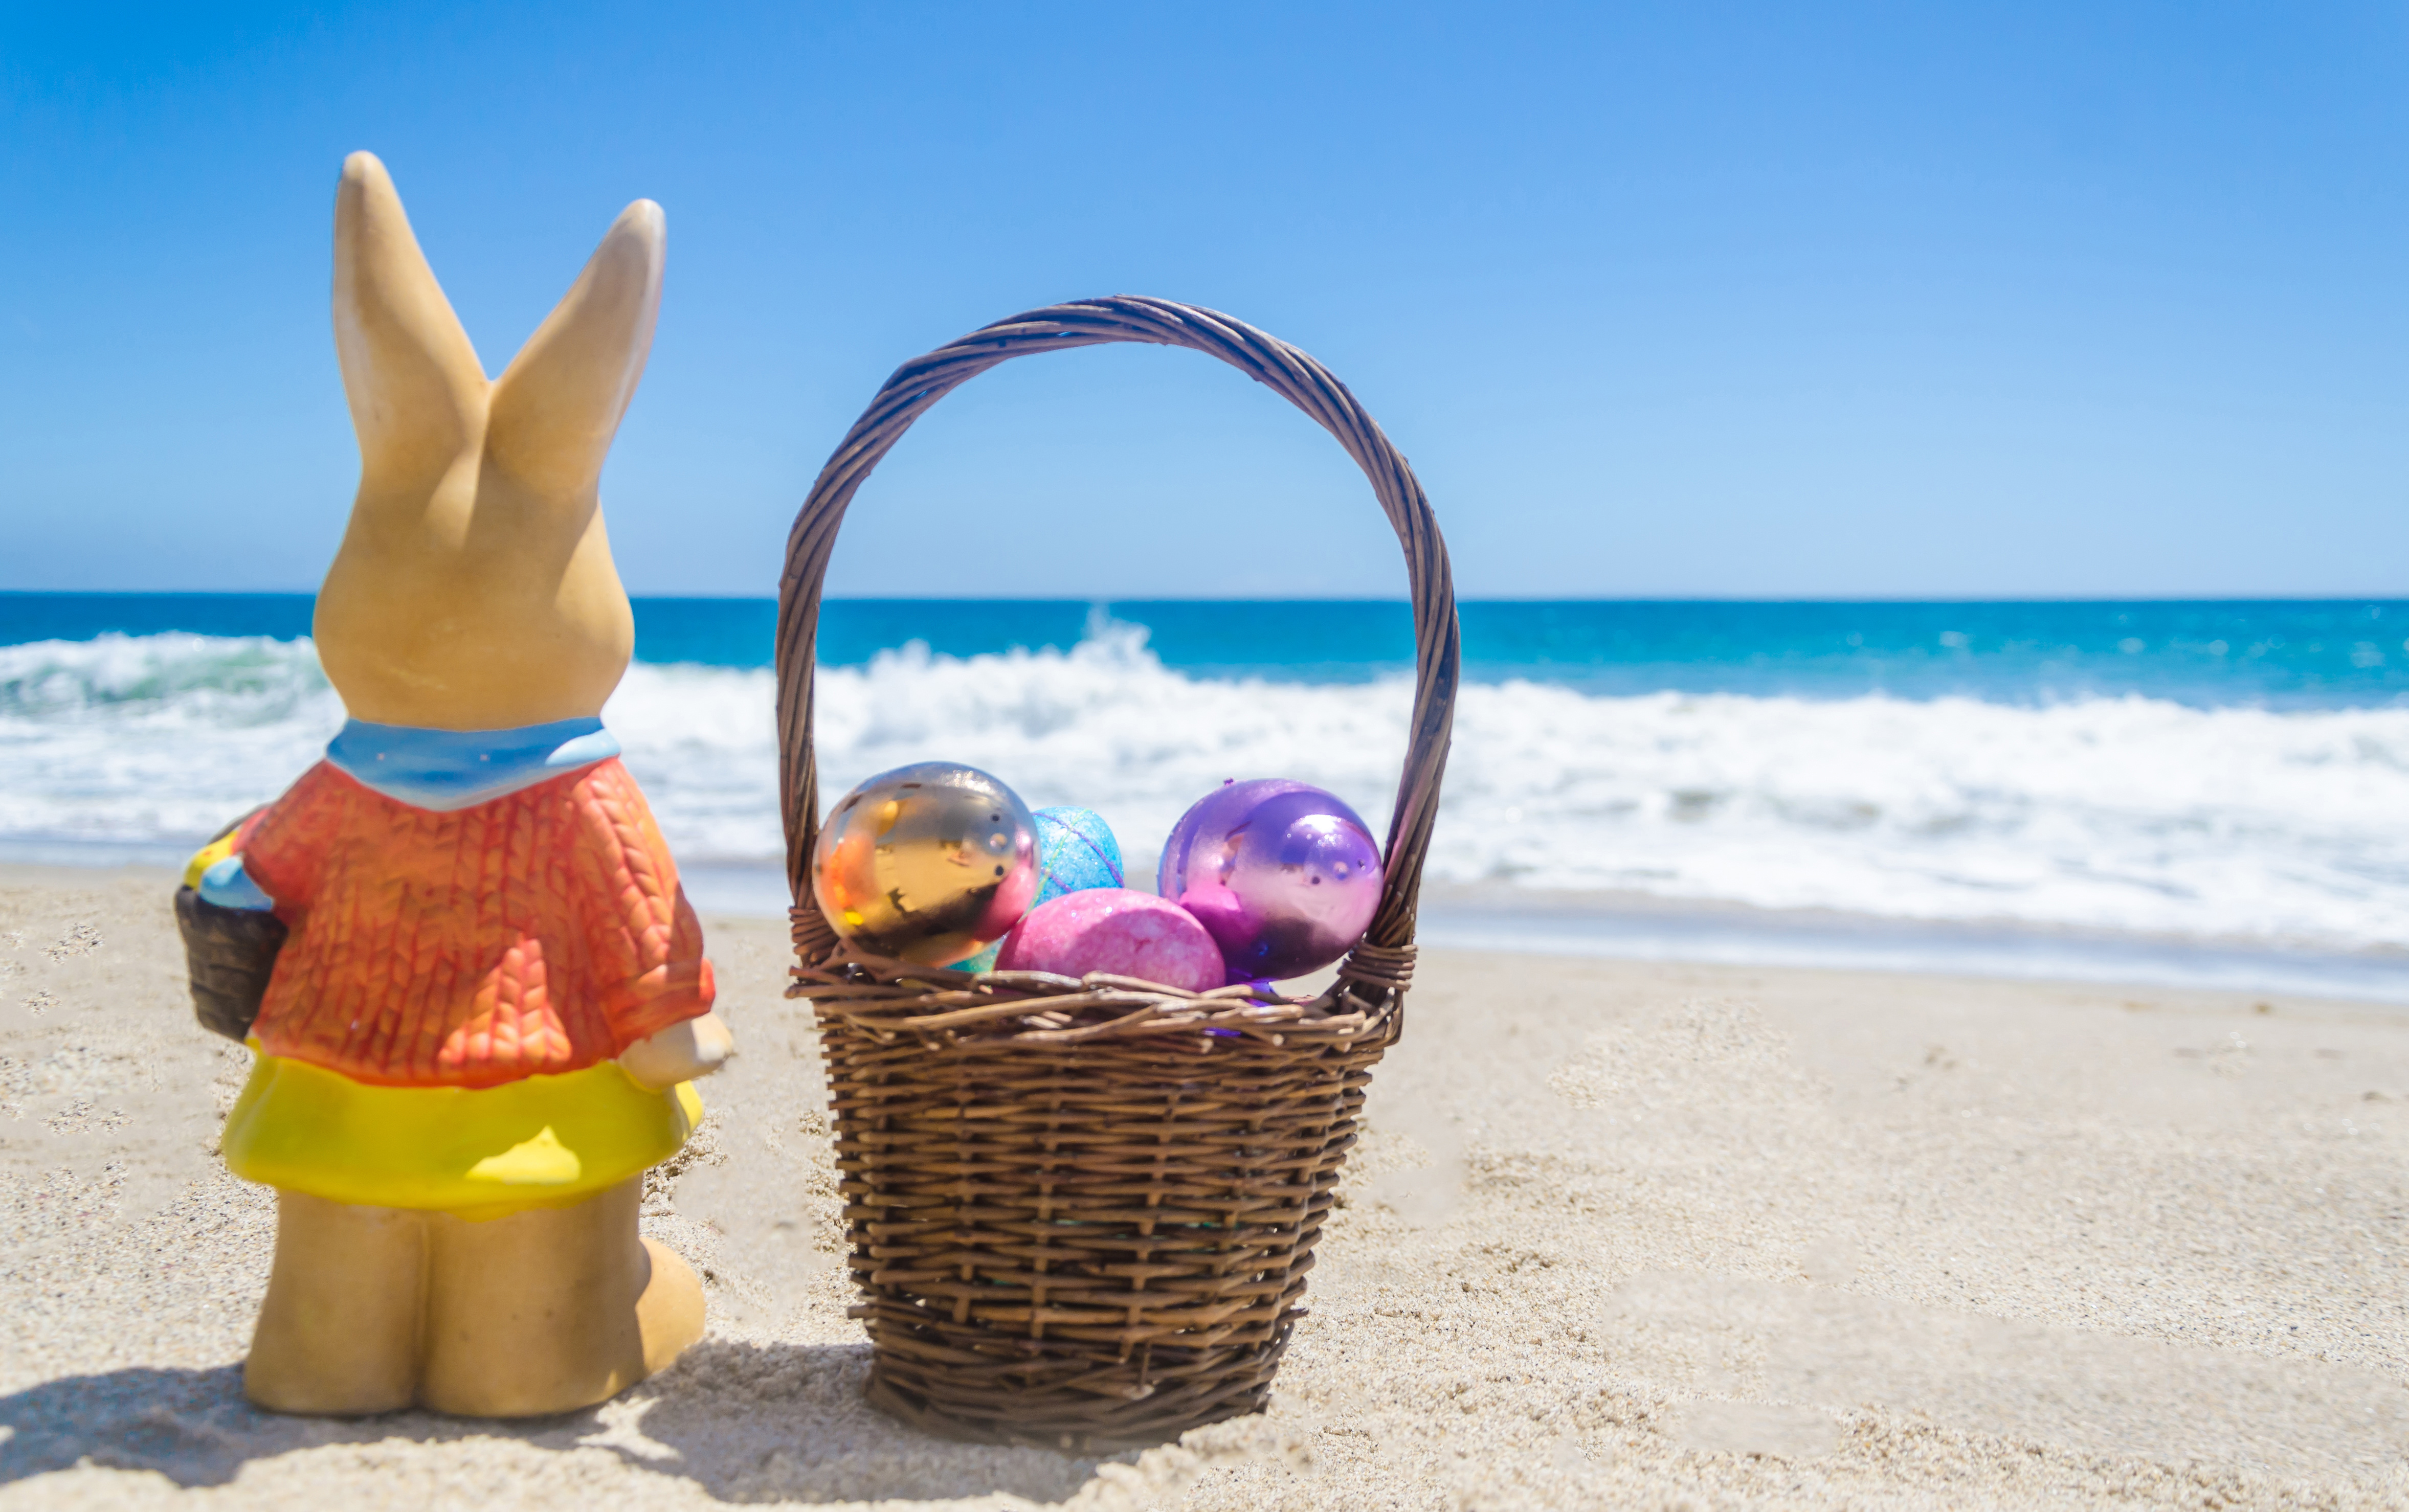 10 Amazing Places To Go For The Easter Holidays